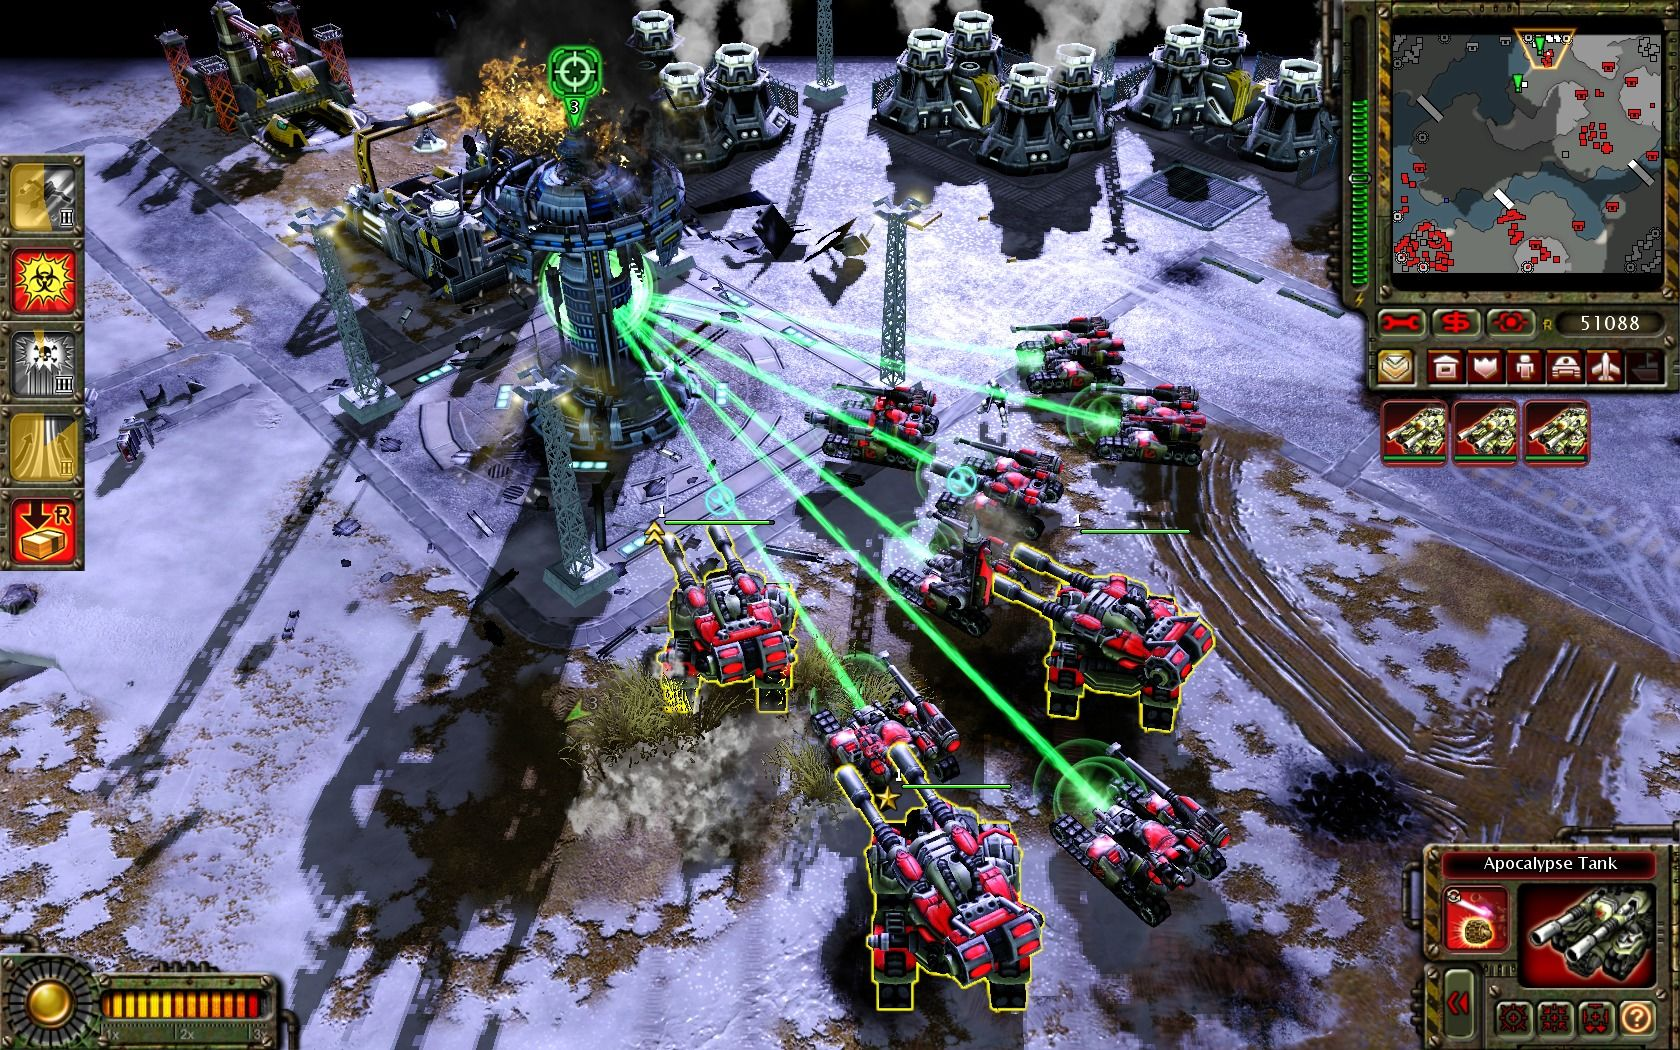 Command & Conquer: Red Alert 3 - Uprising Windows Soviet tanks taking out the objective, a Futuretech facility.